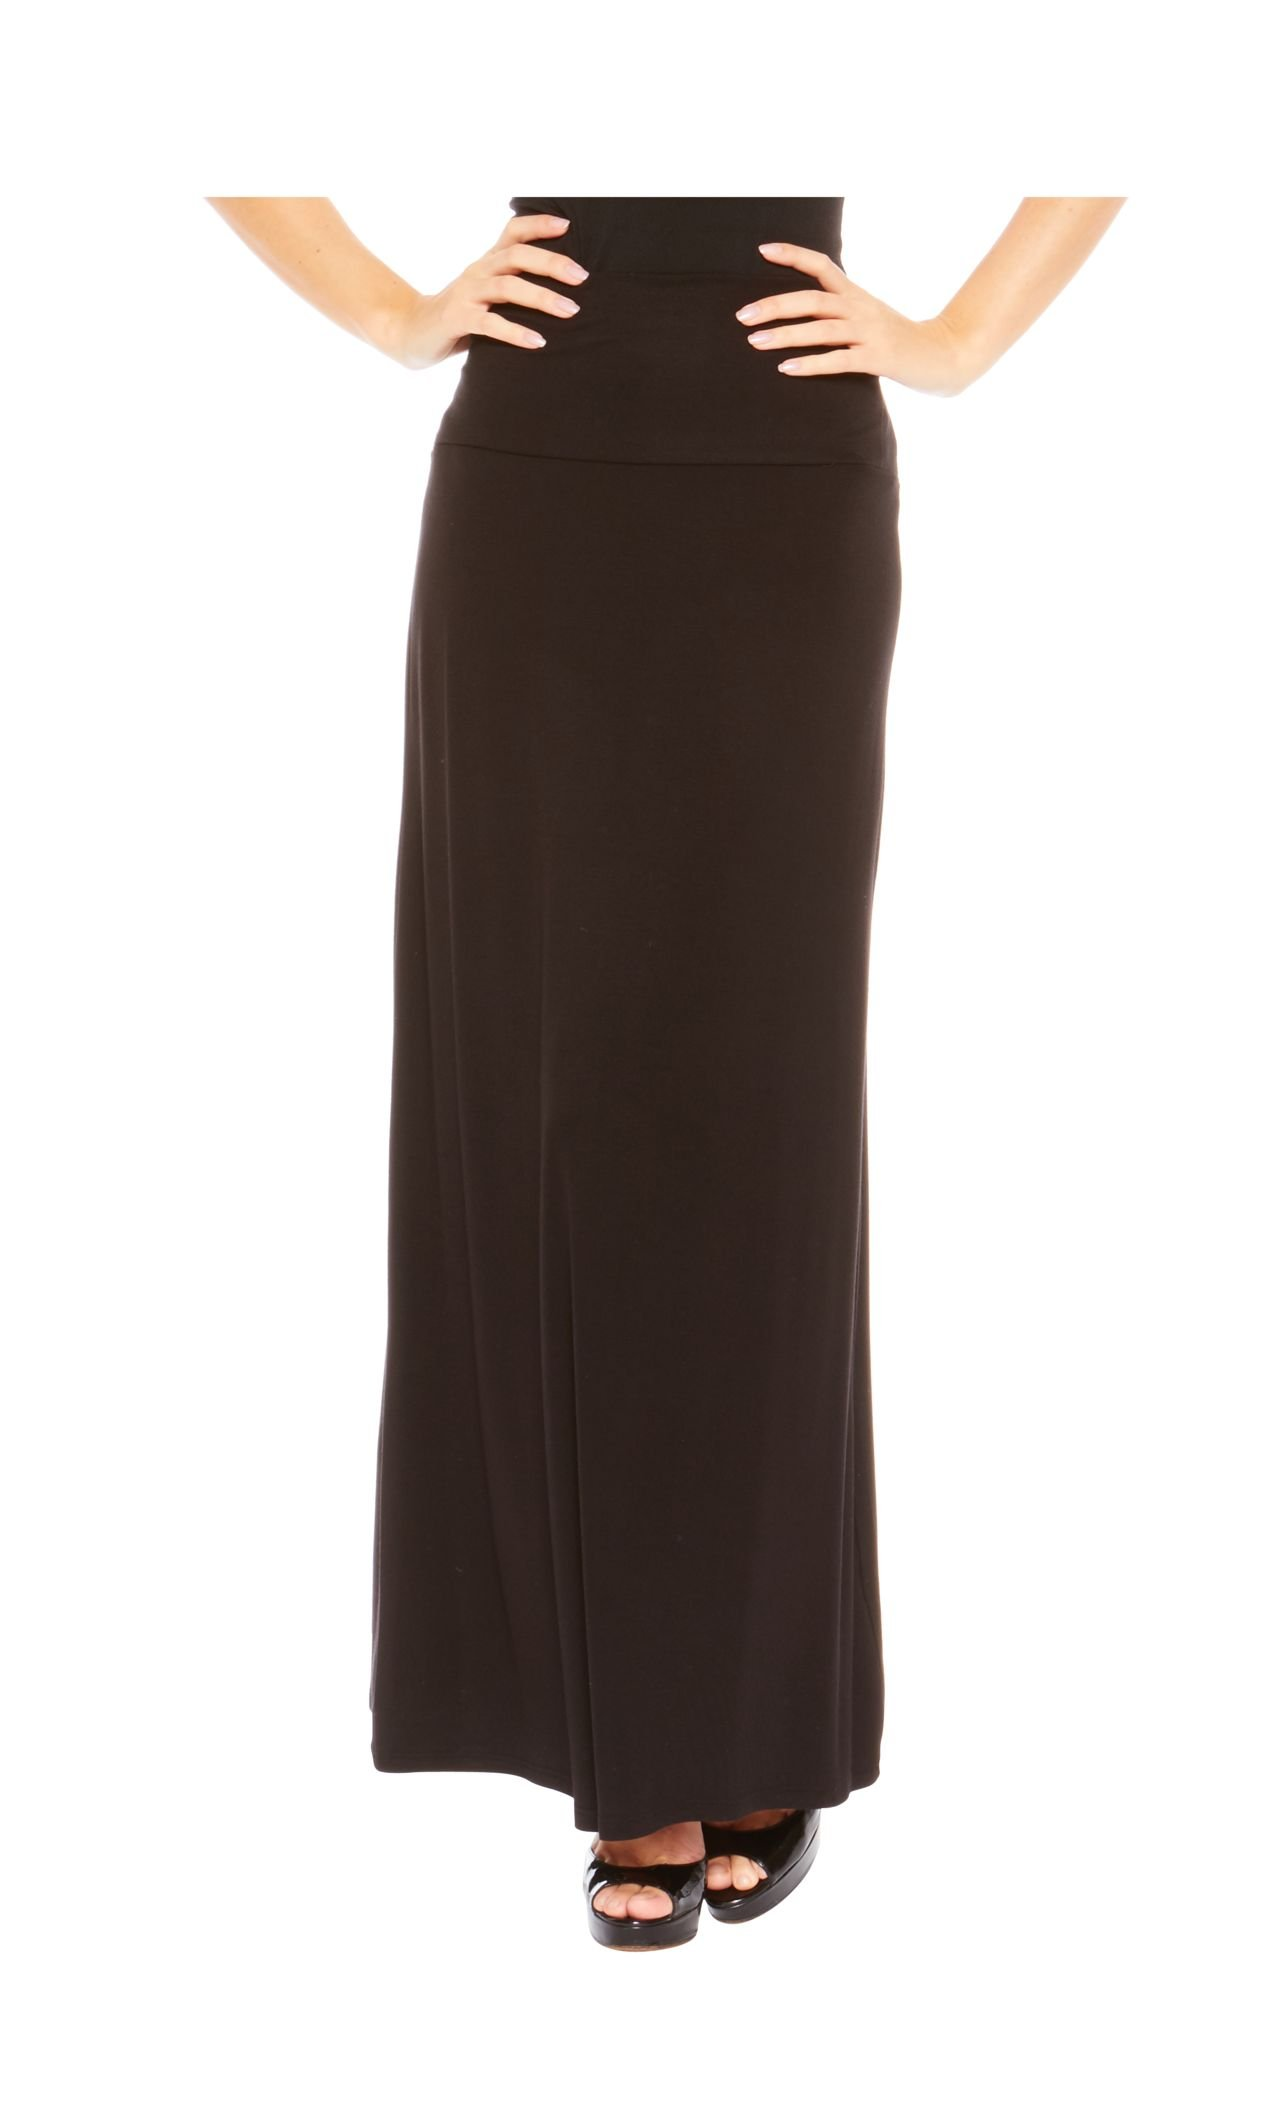 Red Hanger Women's Stylish Solid Long Maxi Skirt - Made in USA, Black-L